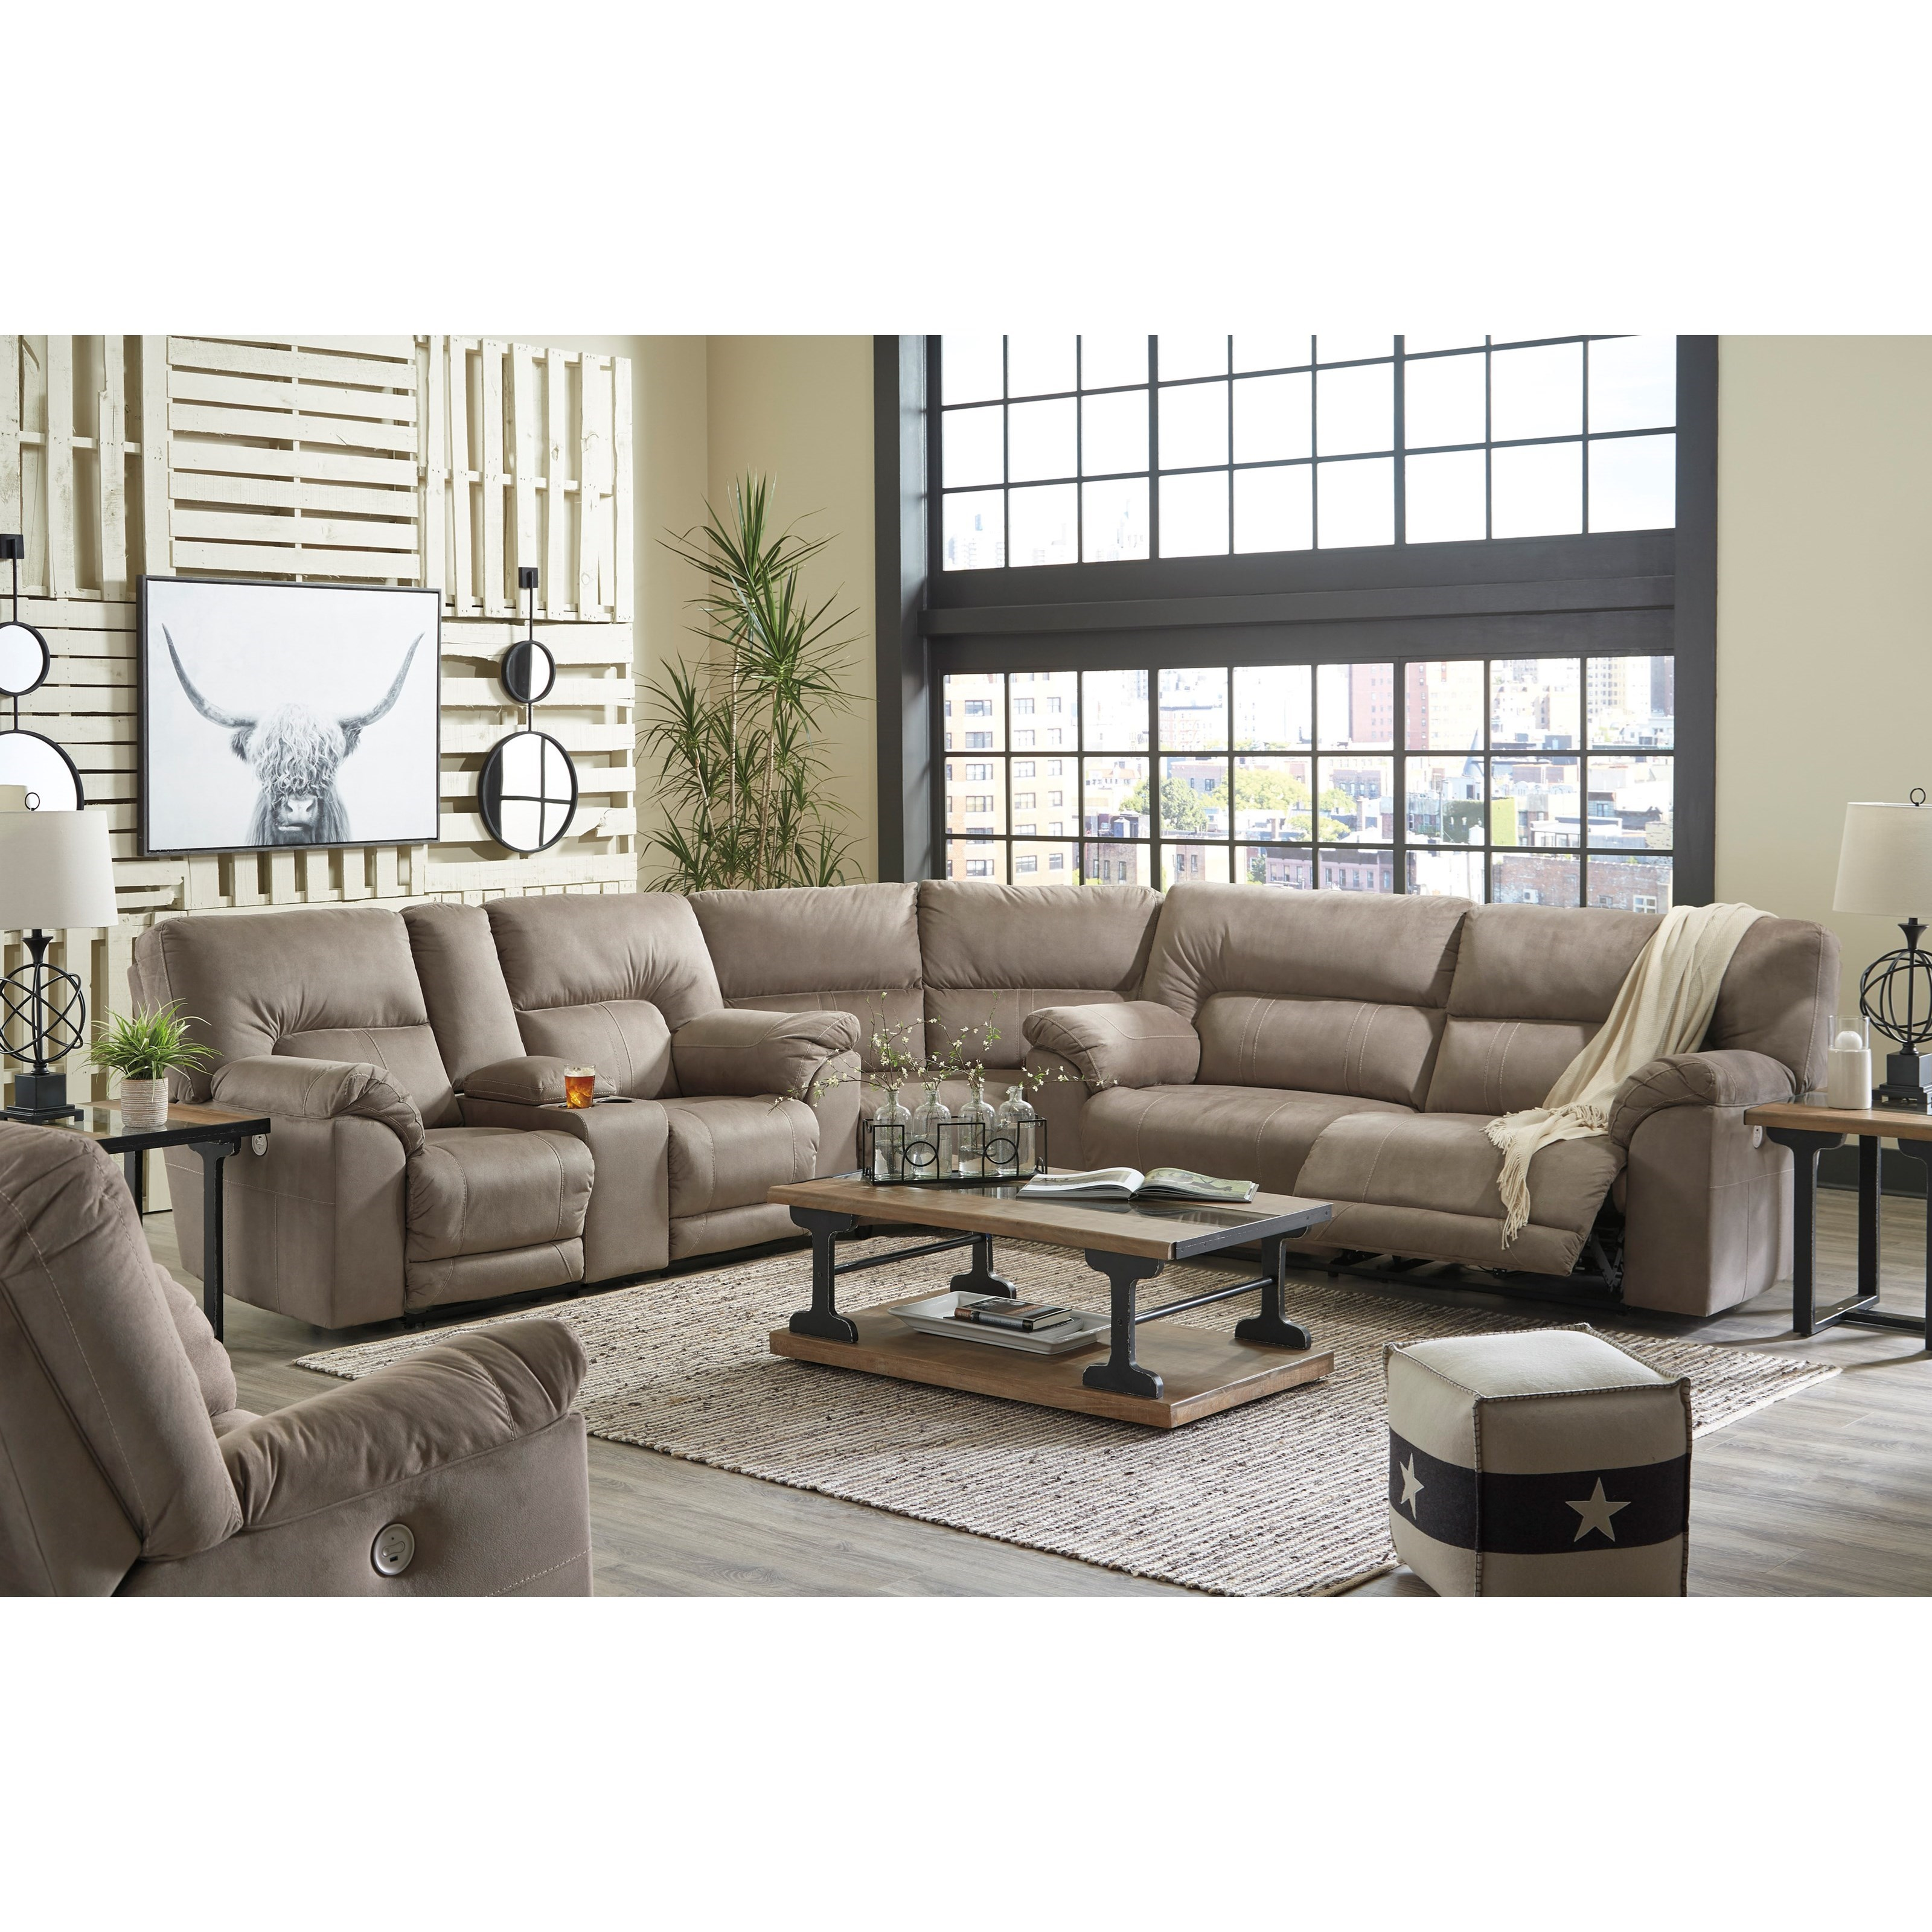 Cavalcade Reclining Living Room Group by Benchcraft at Miller Waldrop Furniture and Decor